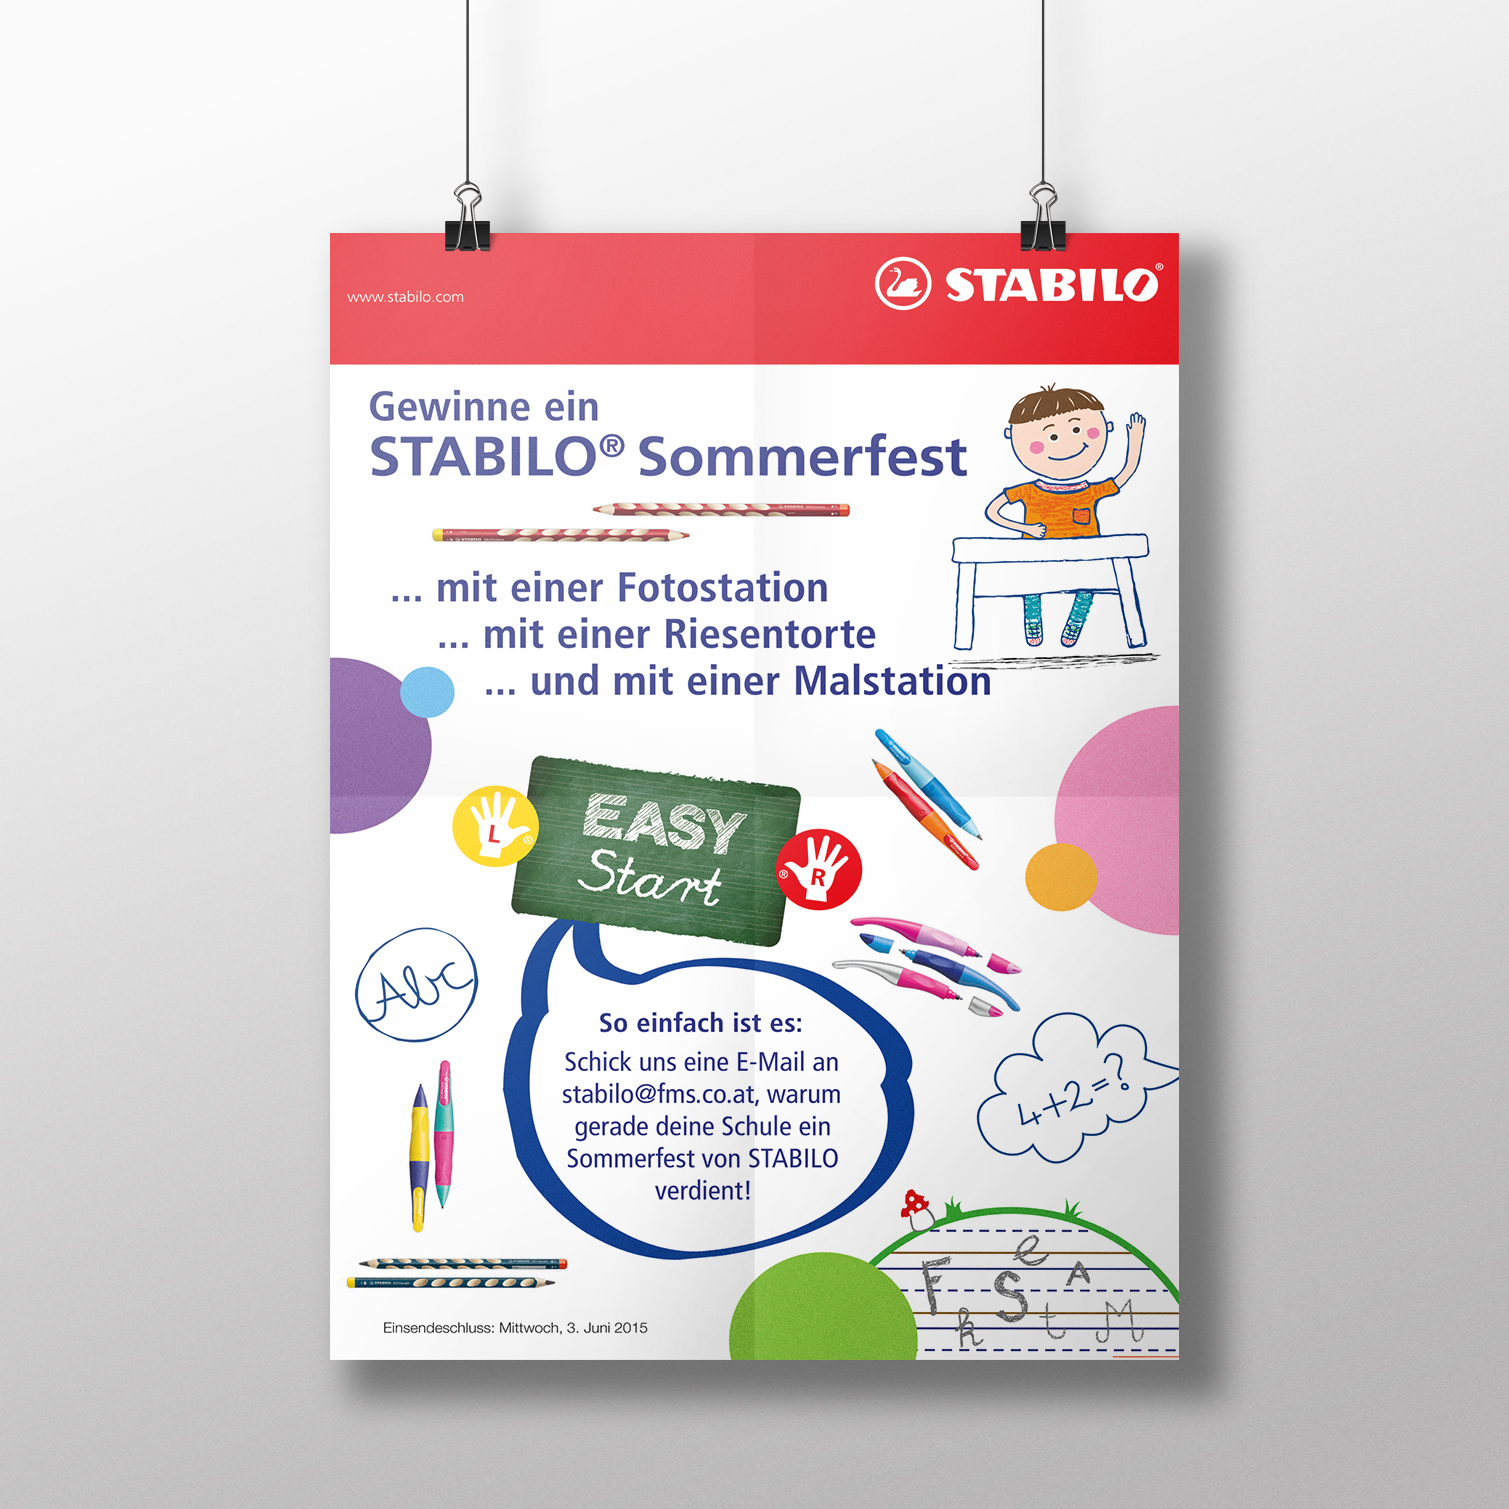 Stabilo_POSTER